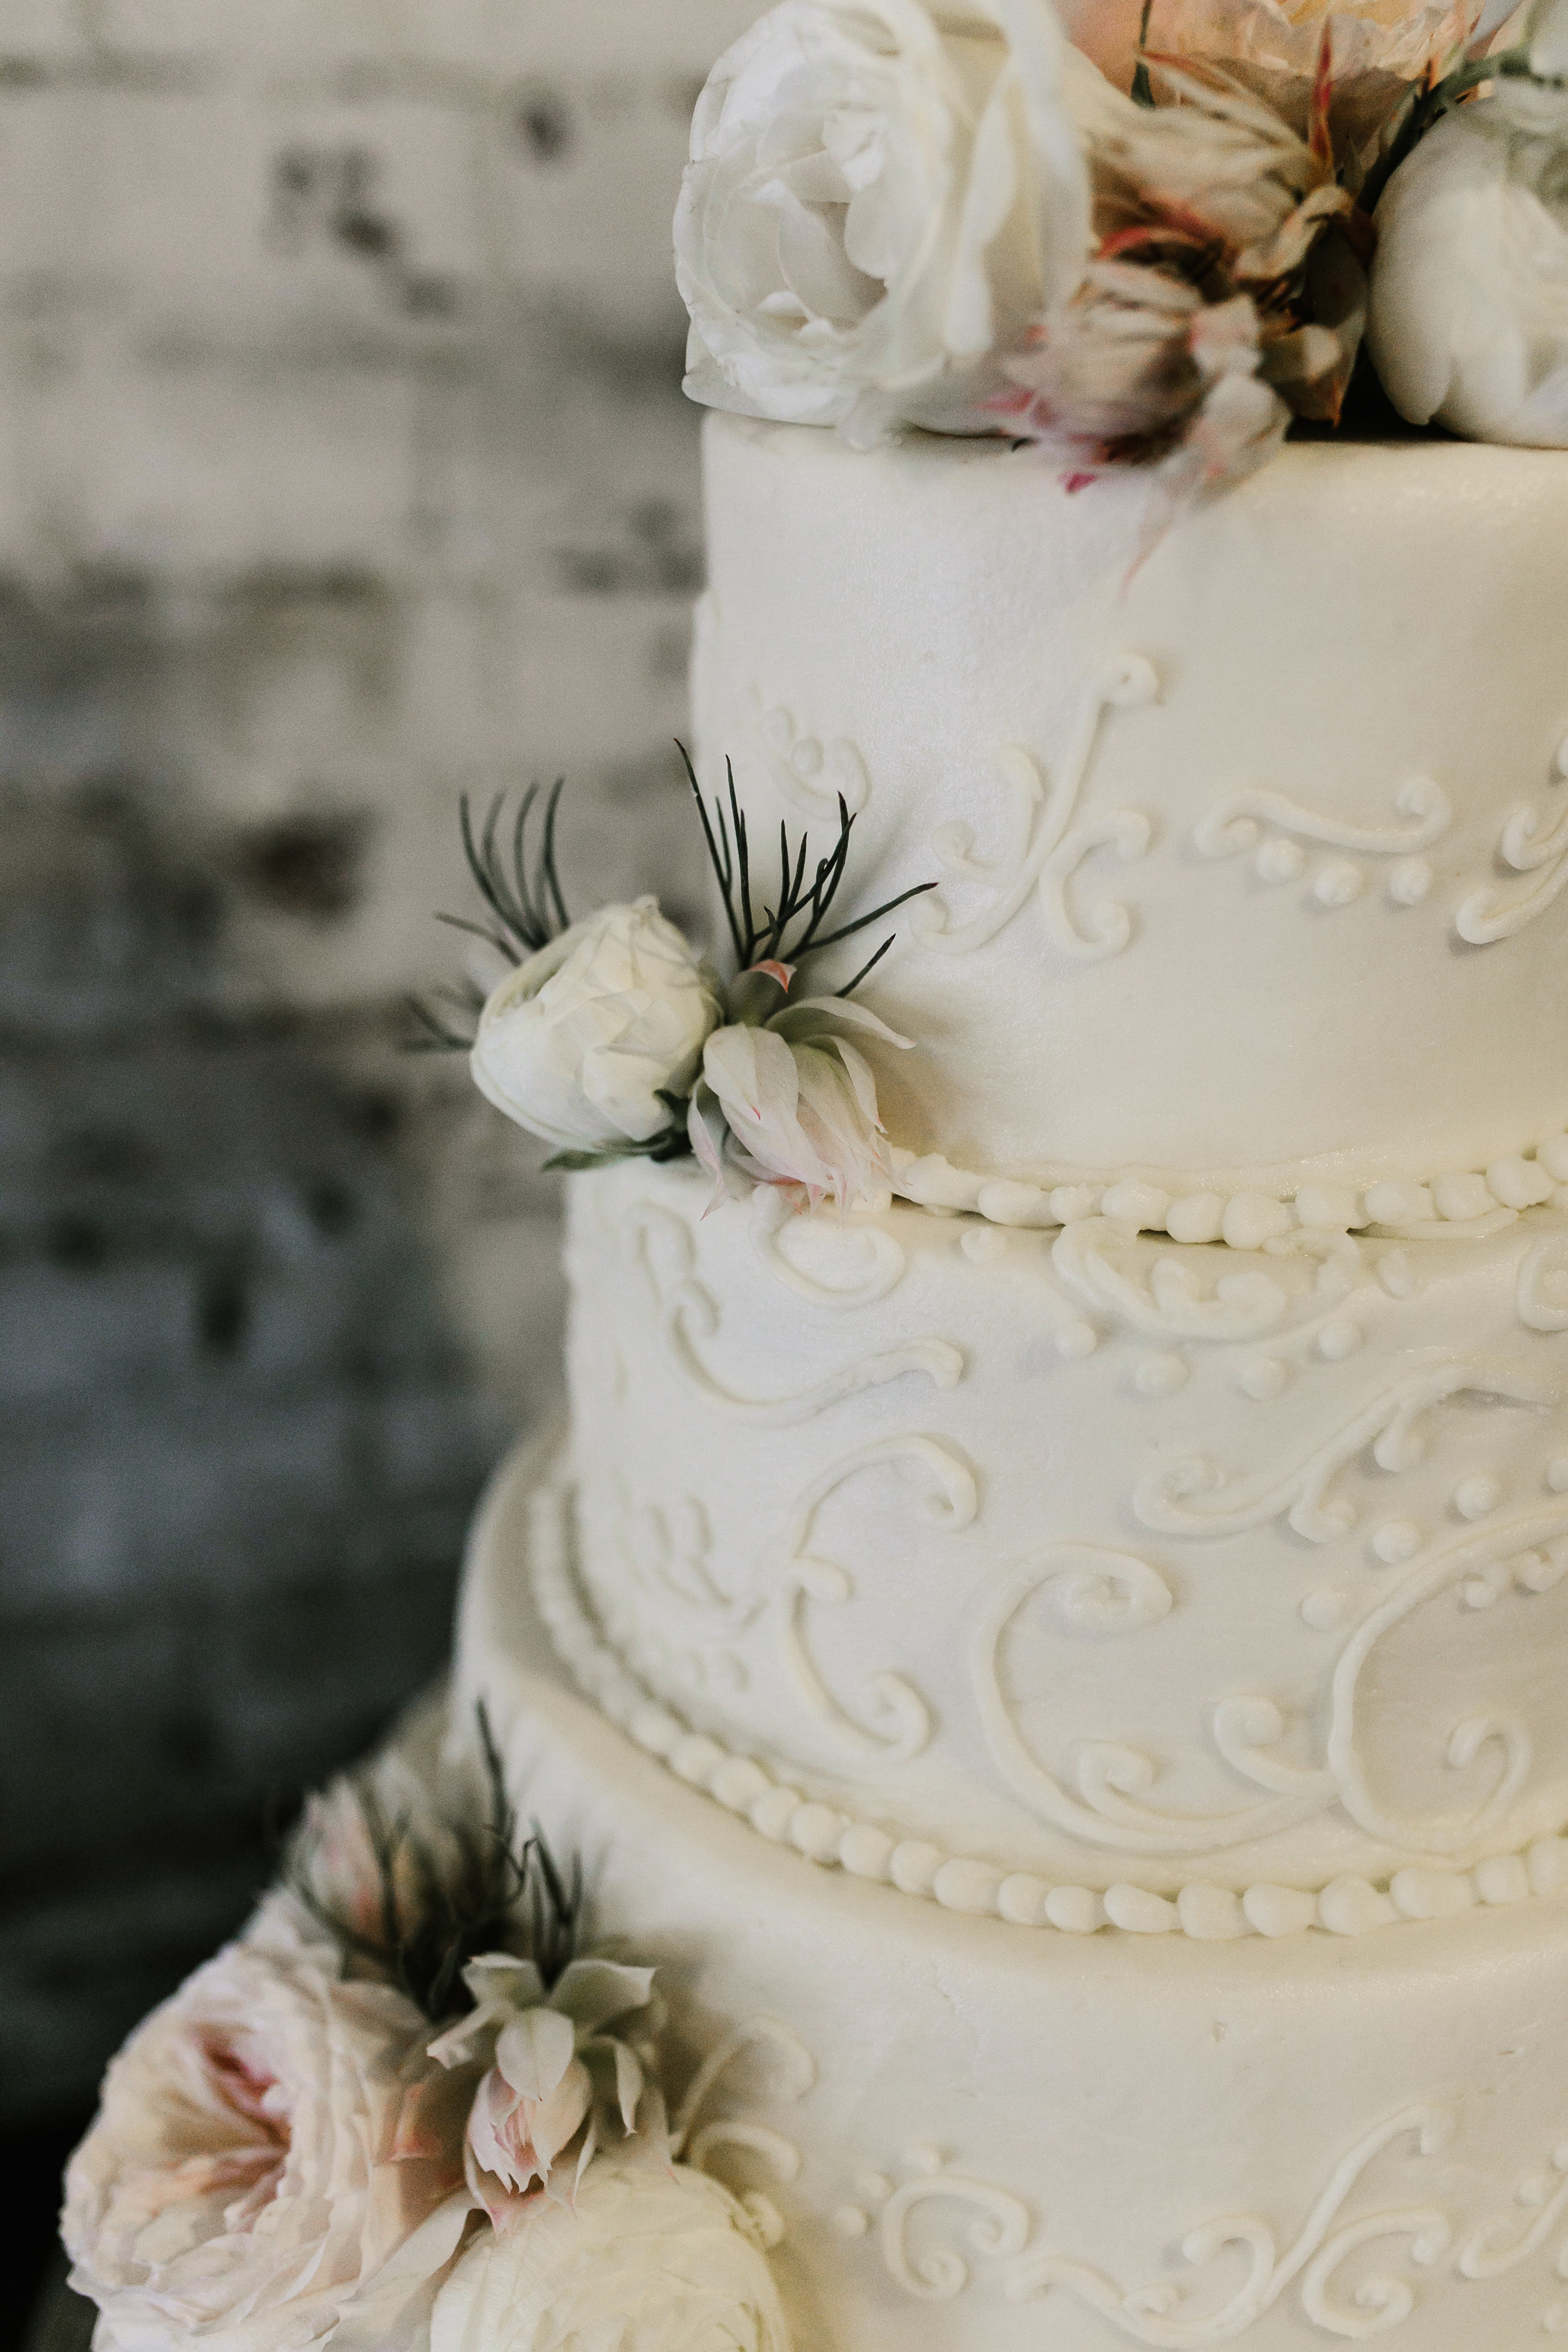 Detailed Cake with Floral  (2).jpg